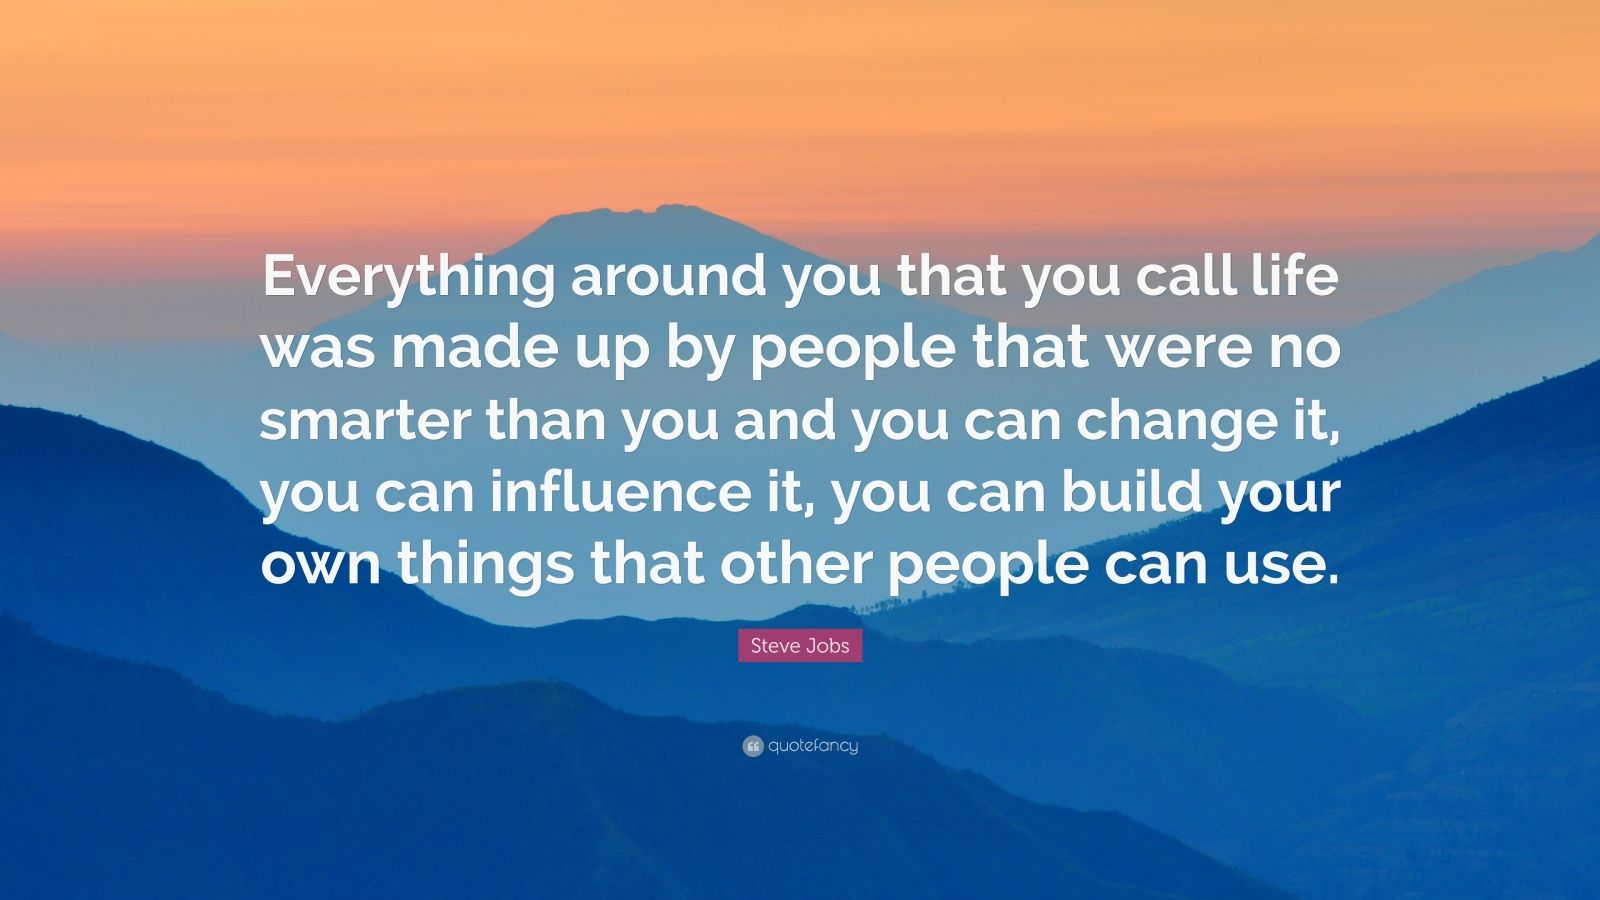 "Steve Jobs Quote: ""Everything around you that you call life was made up by people that were no smarter than you and you can change it, you can influence it, you can build your own things that other people can use."""